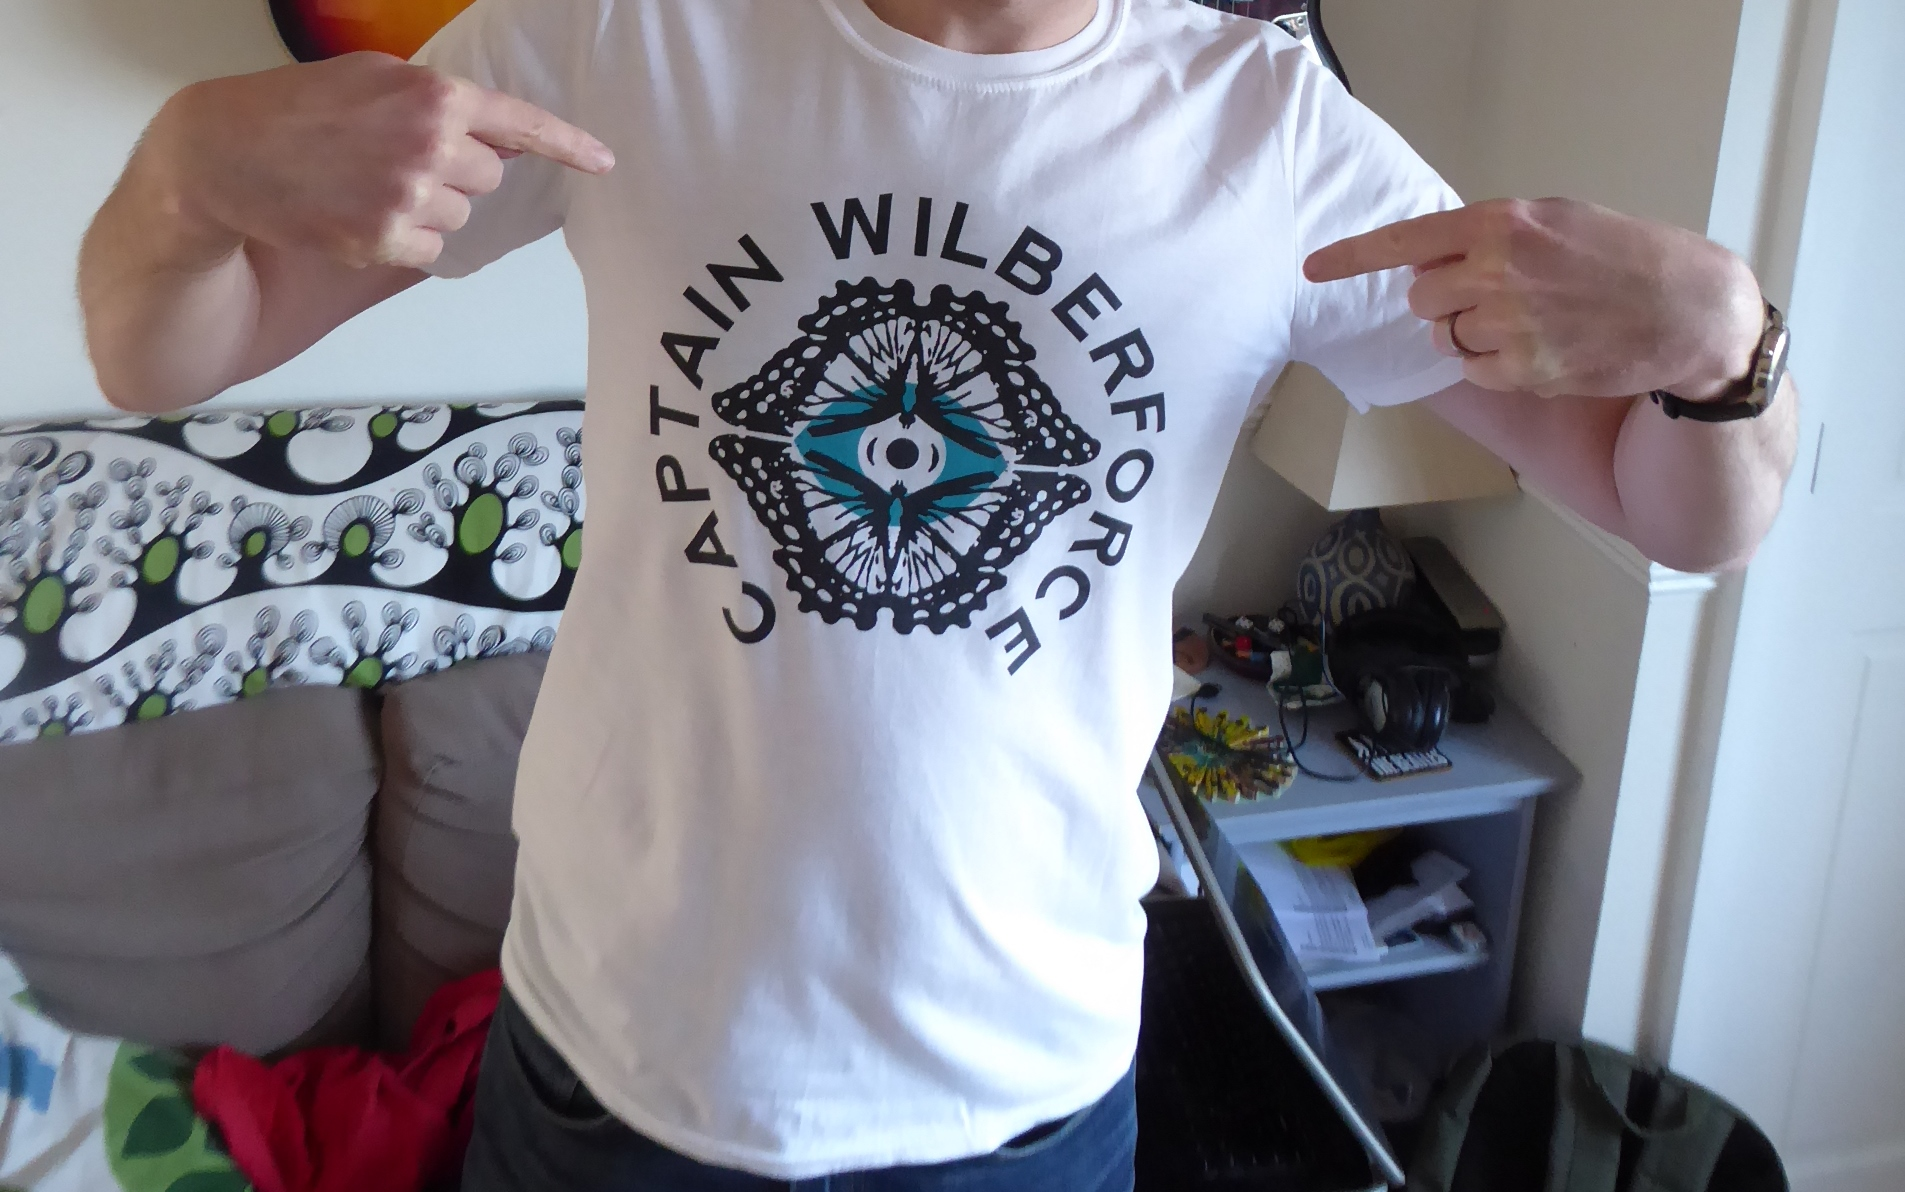 Captain Wilberforce T-shirt